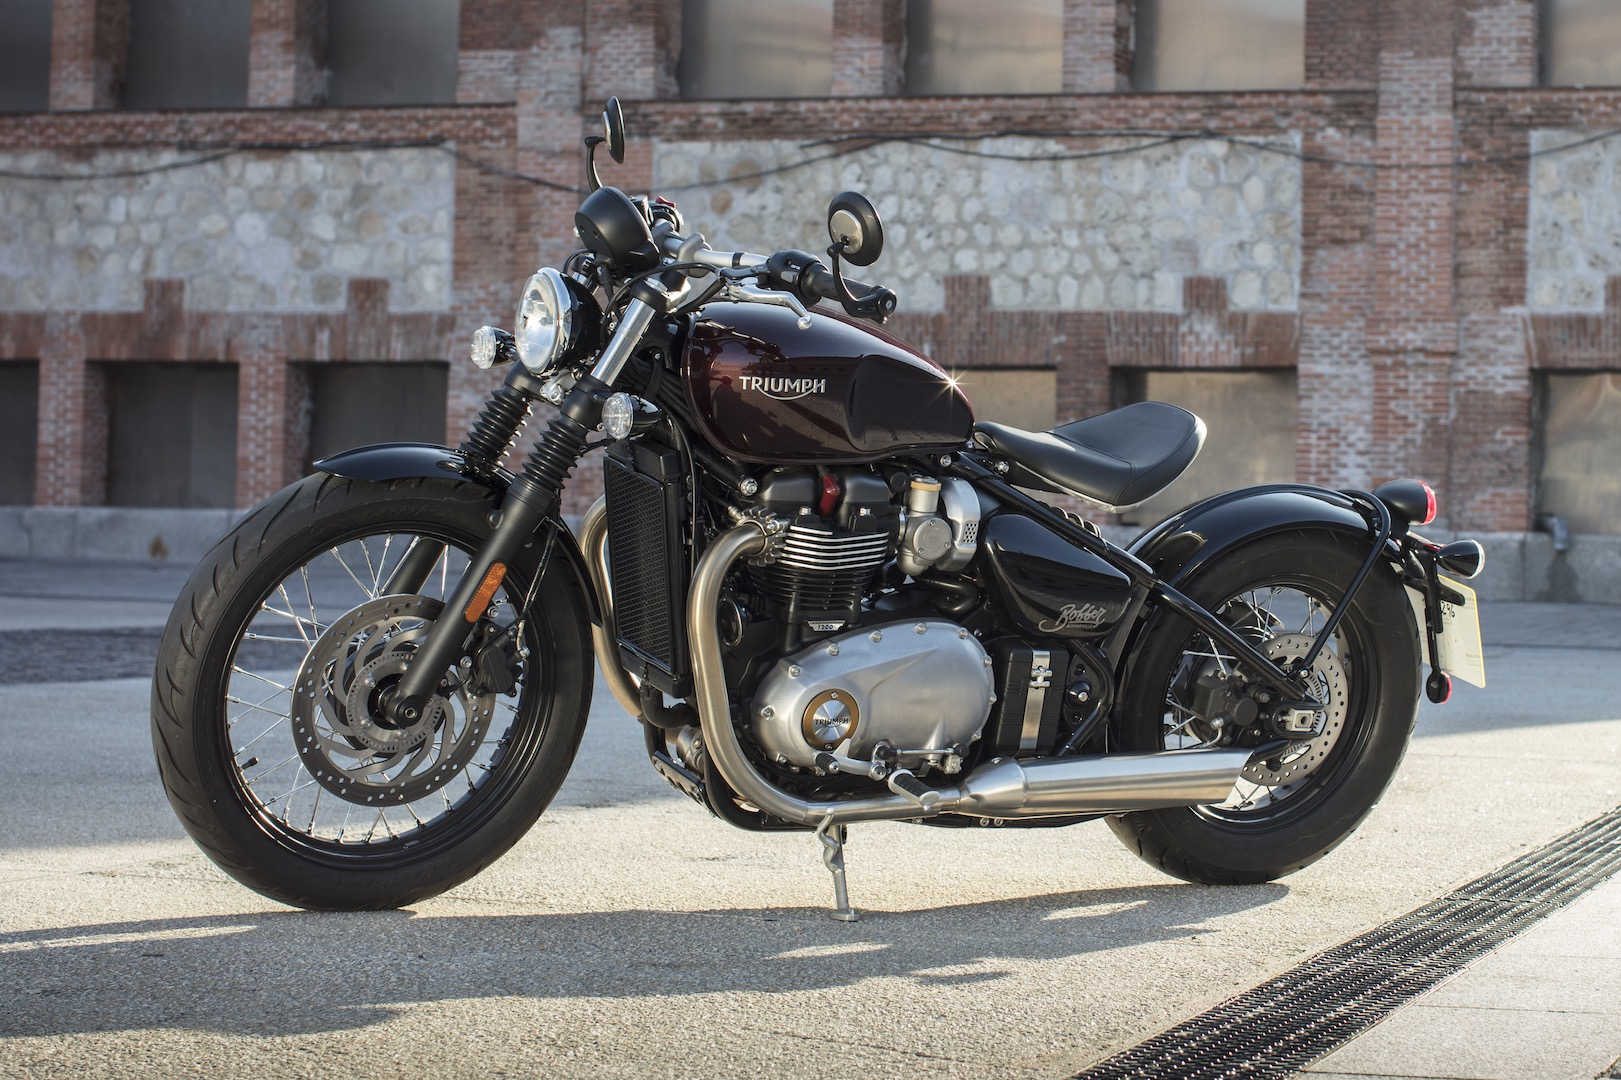 2017 Triumph Bonneville Bobber Review Back To Basics